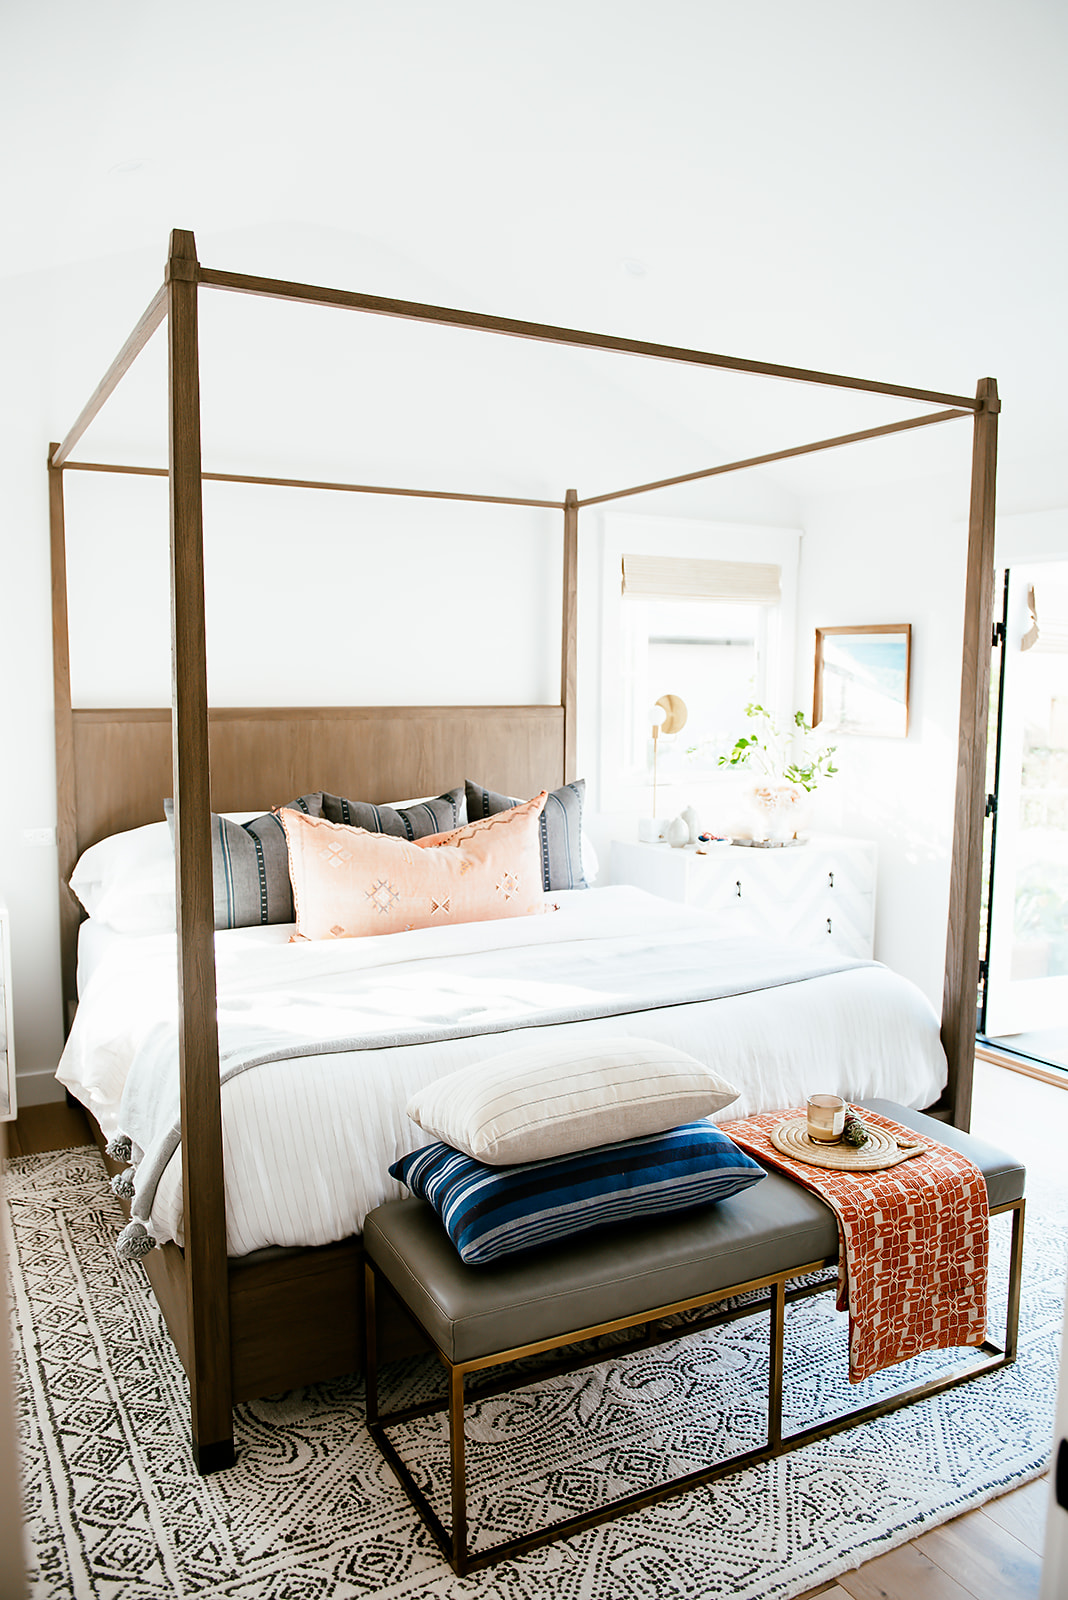 4-post bed in california house